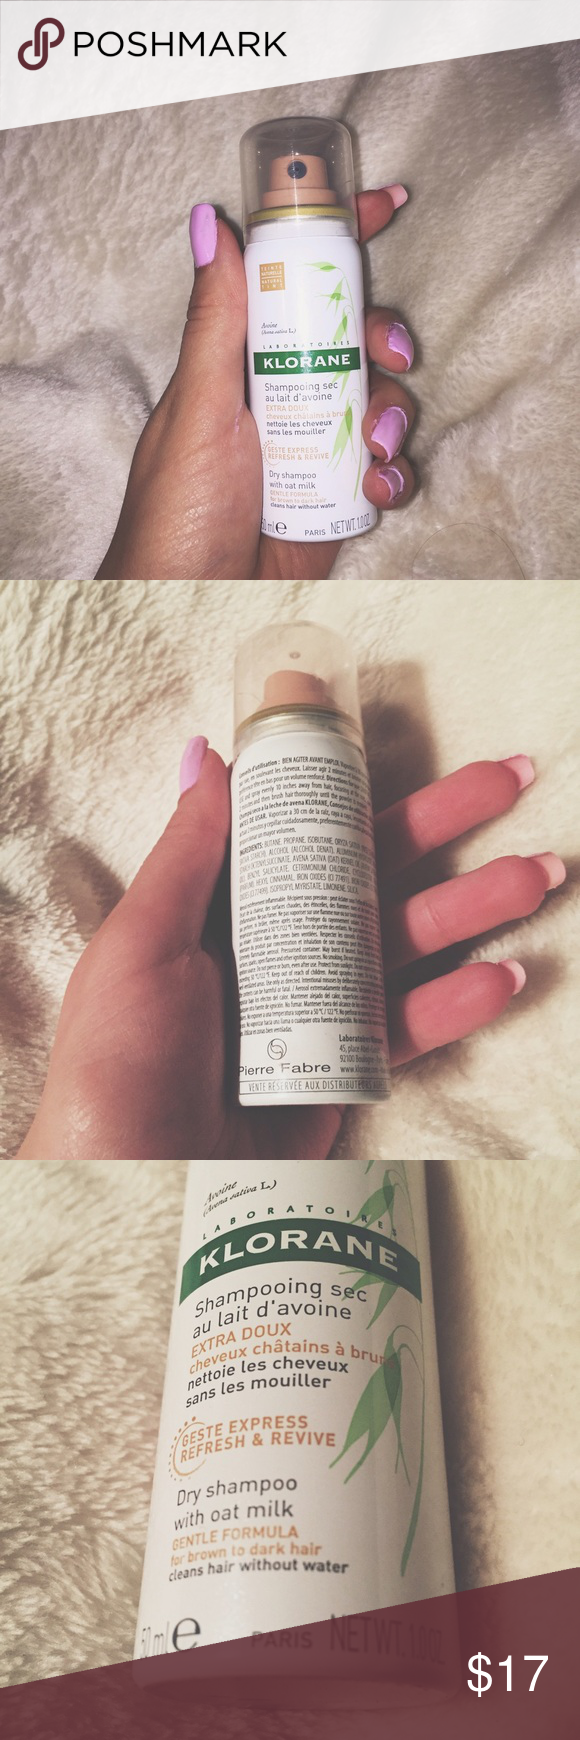 Klorane Dry Shampoo with Oat Milk - Natural Tint FOR BRUNETTE TO DARK HAIR | NEVER USED BRAND NEW ✨✨✨✨ selling bc I don't use dry shampoo Klorane Makeup Brushes & Tools